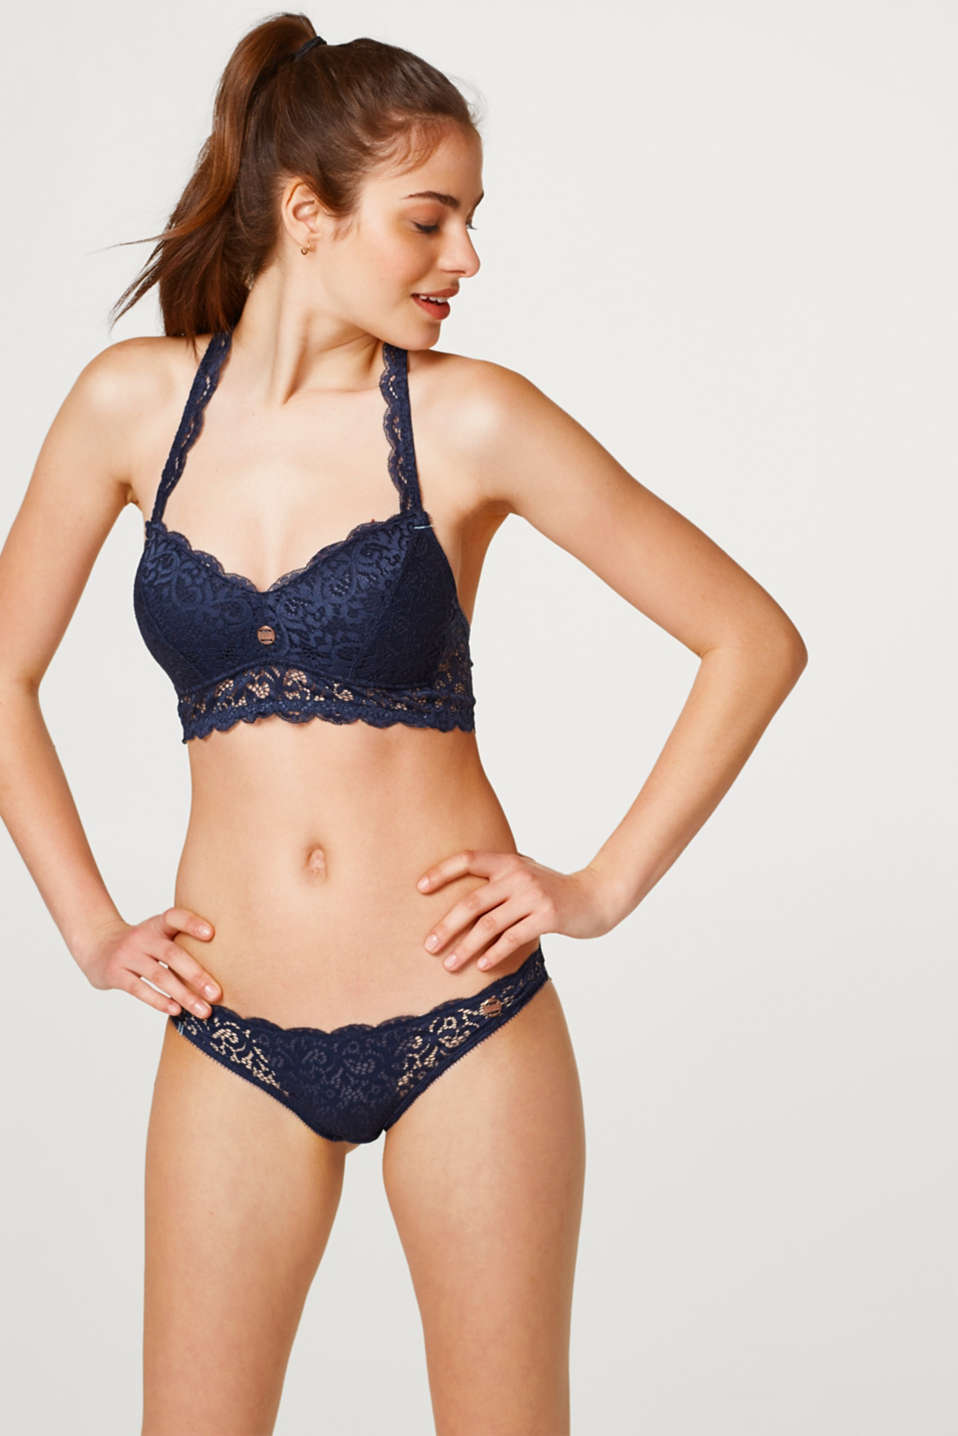 Esprit - Padded, non-wired bra in decorative lace